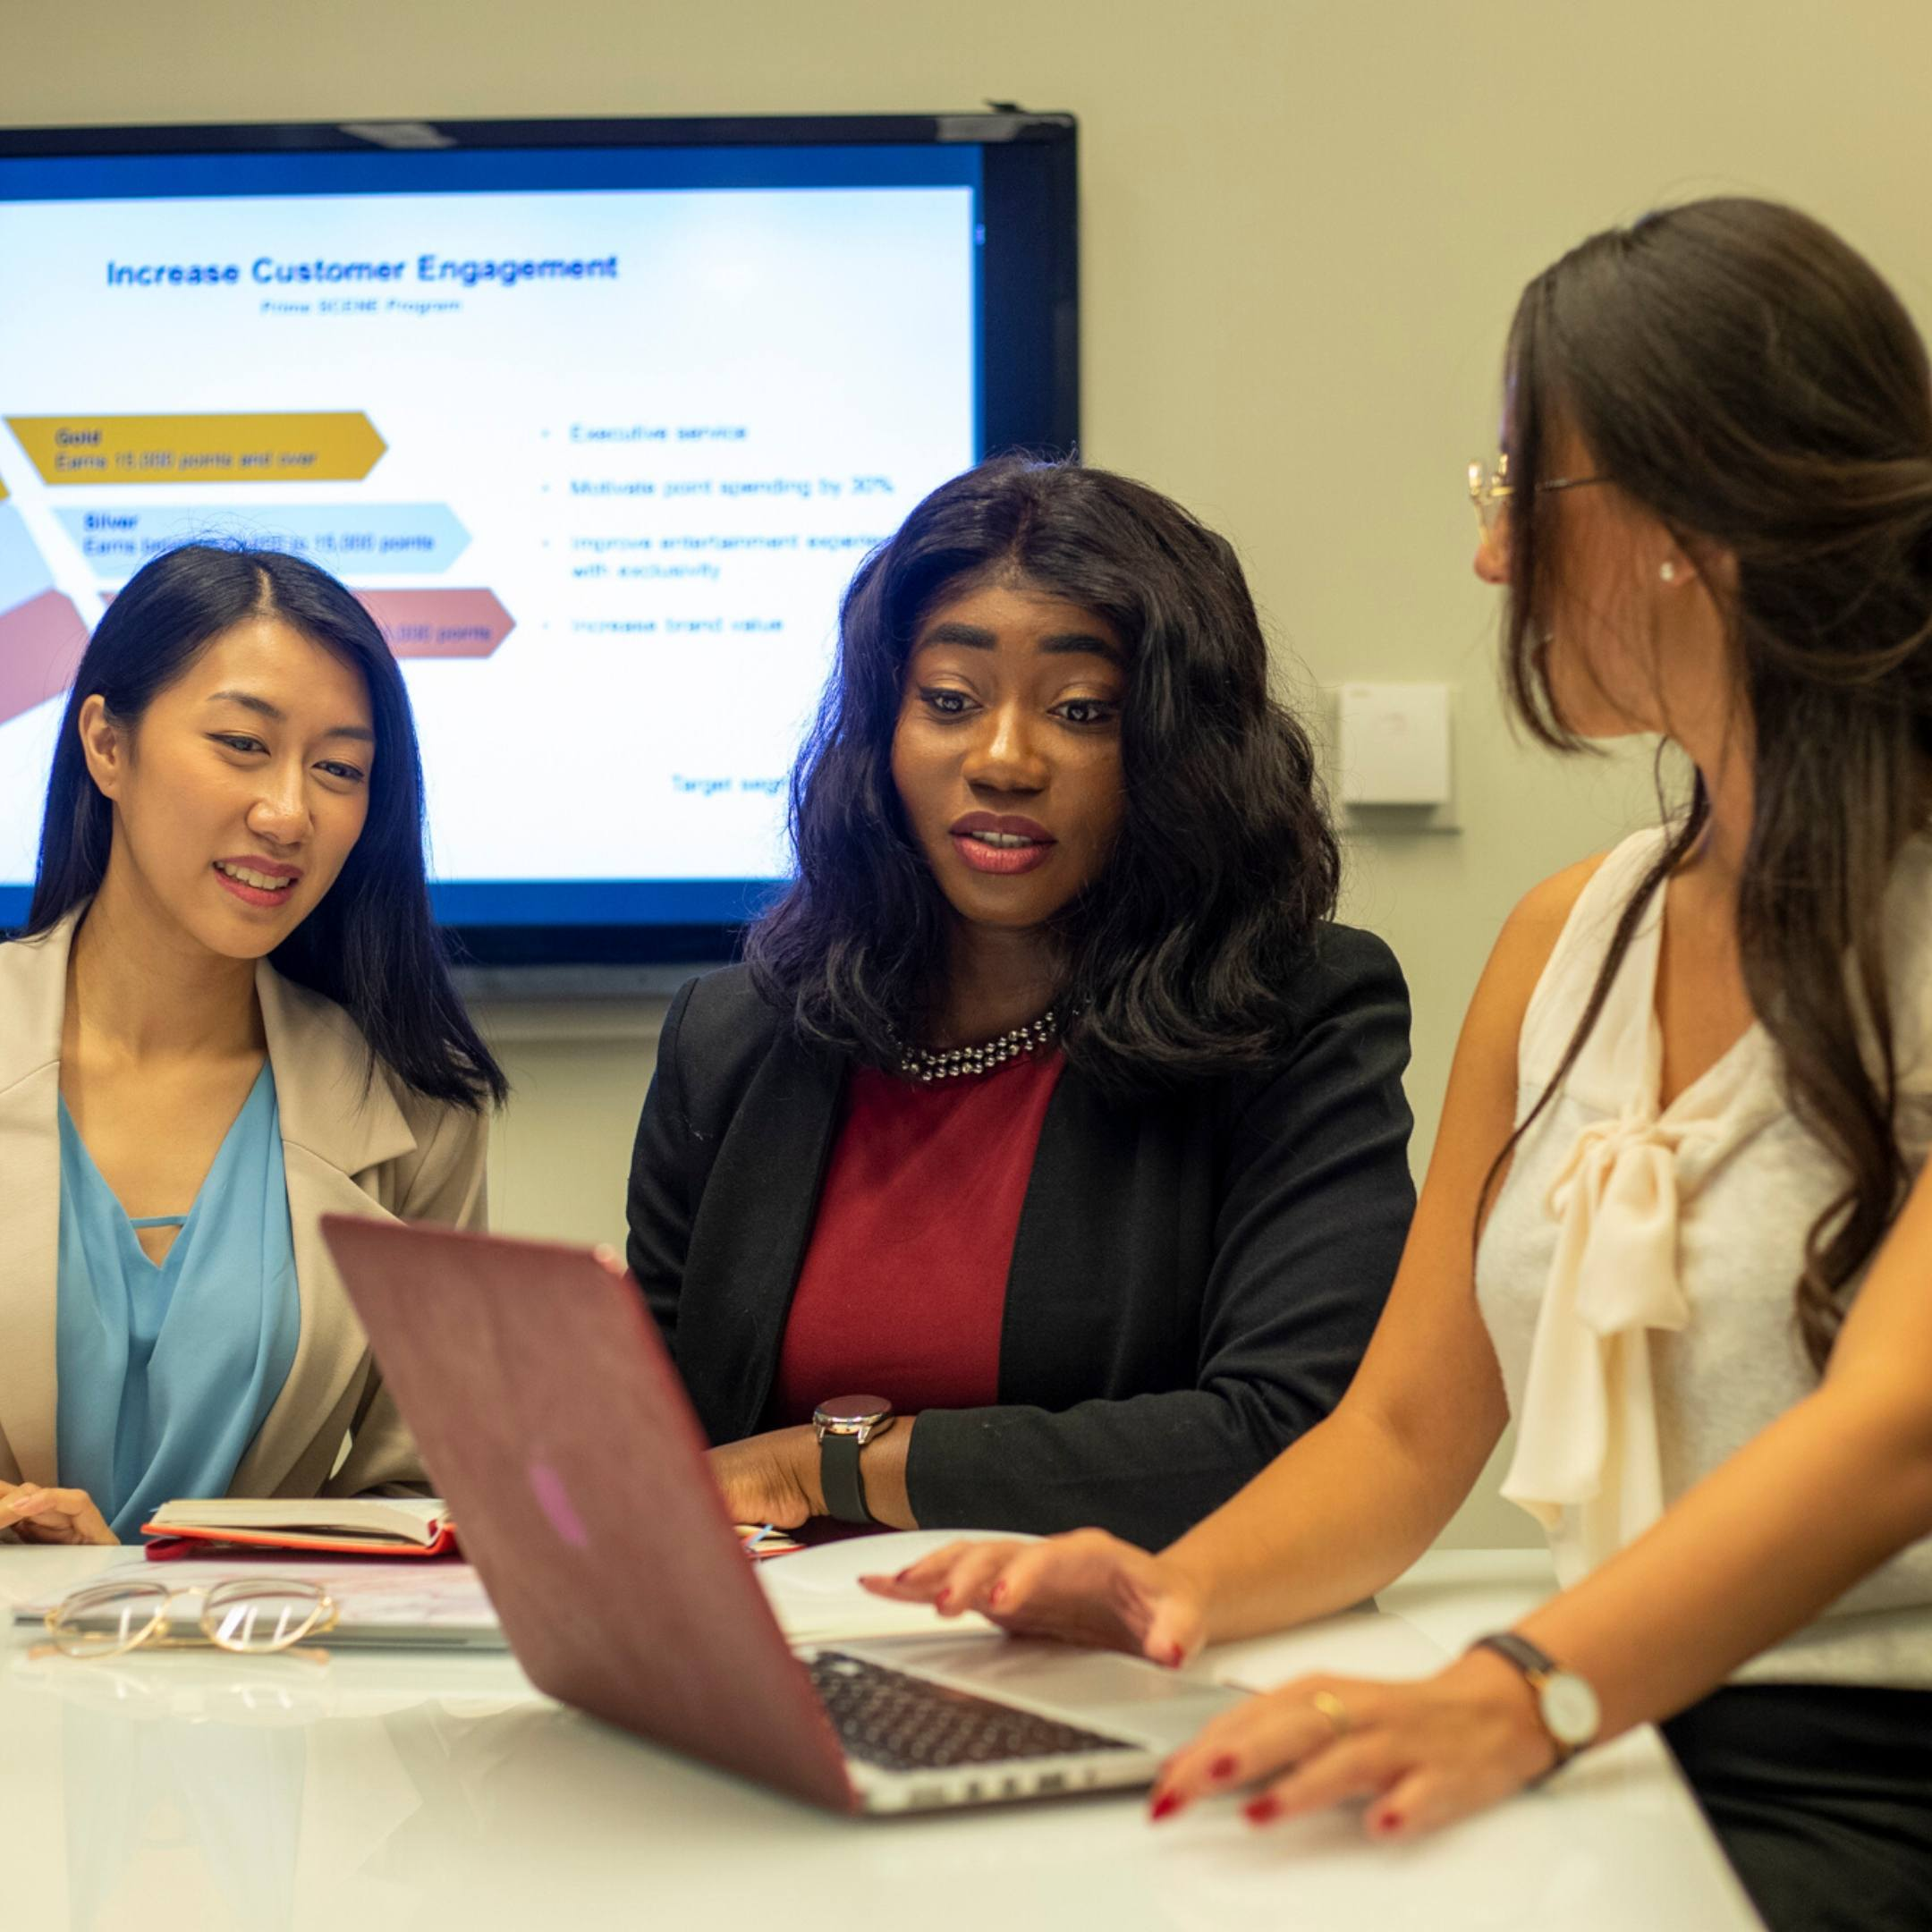 Image of three females working and brainstorming in a meeting.